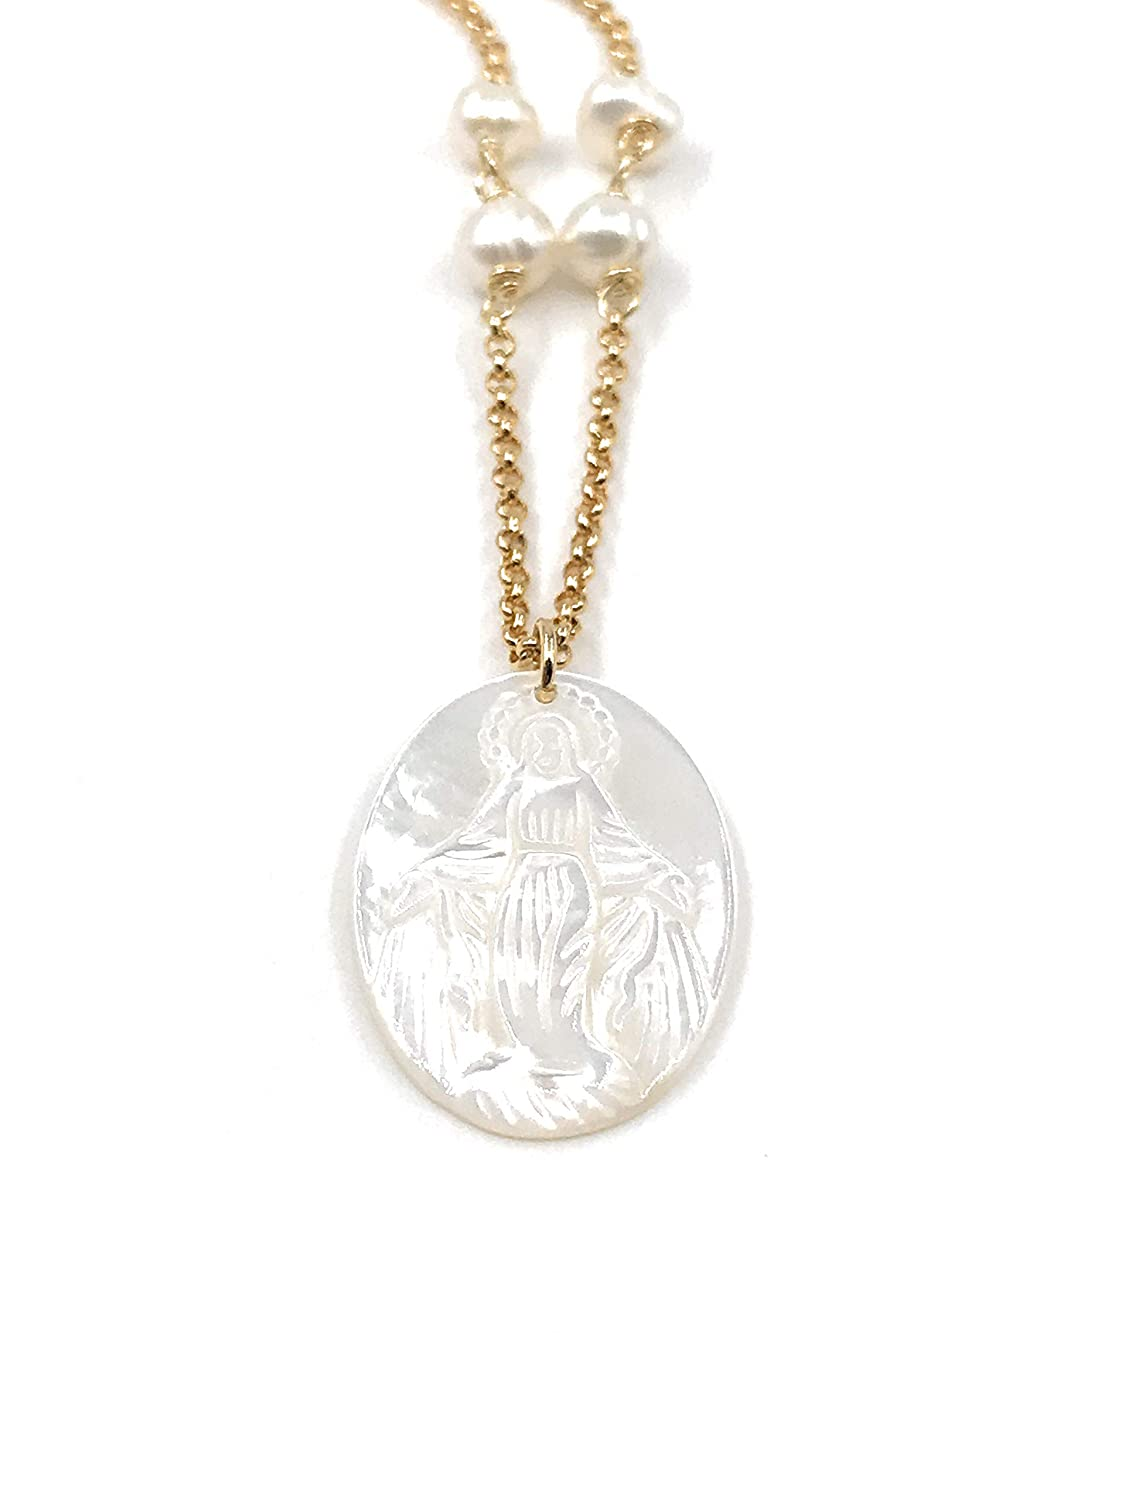 Necklace-Miraculous Medal Necklace